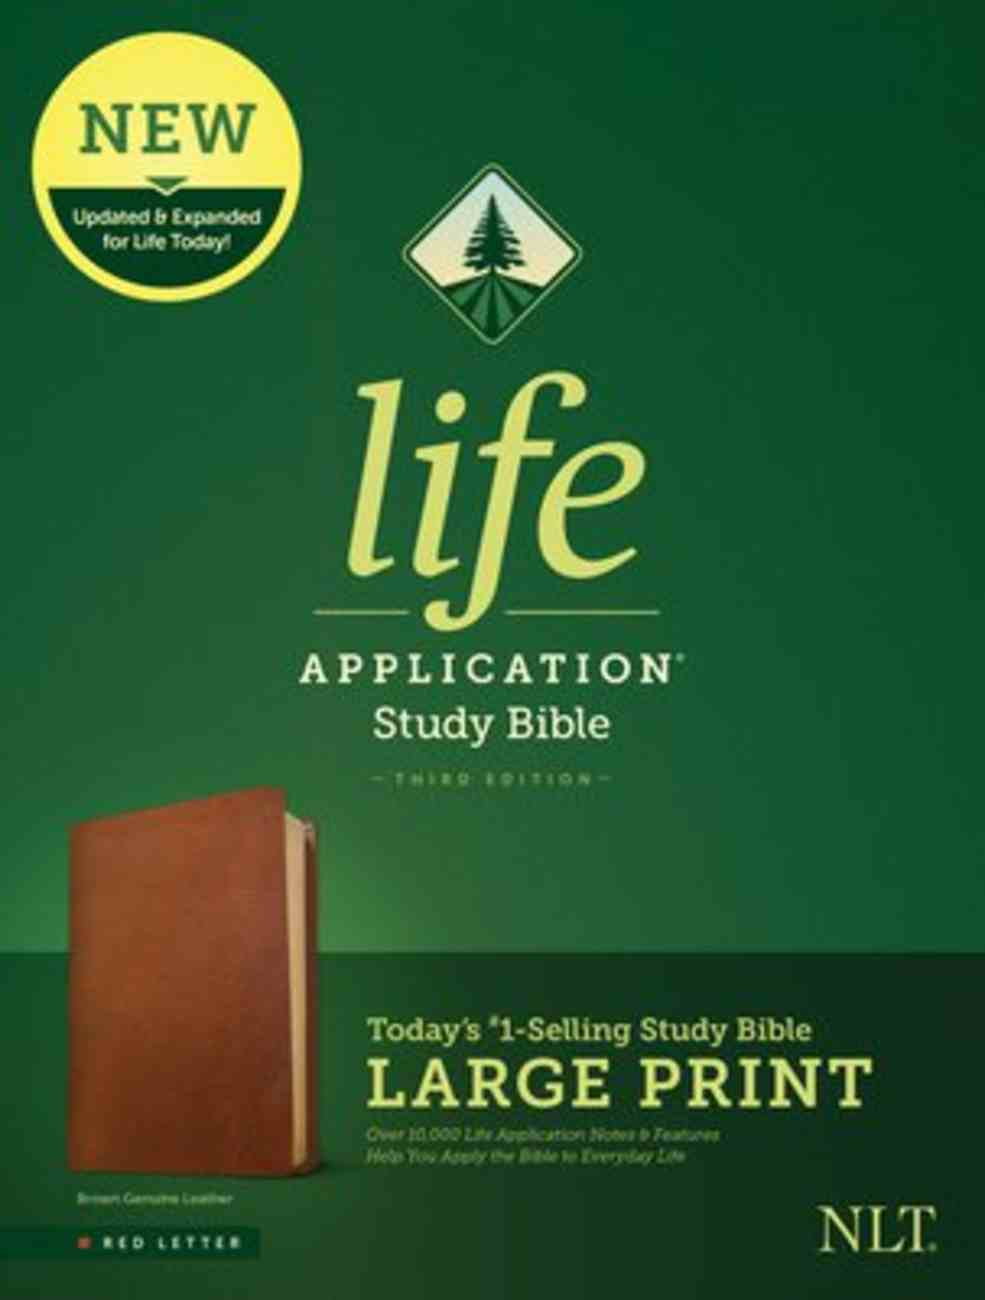 NLT Life Application Study Bible 3rd Edition Large Print Brown (Red Letter Edition) Genuine Leather